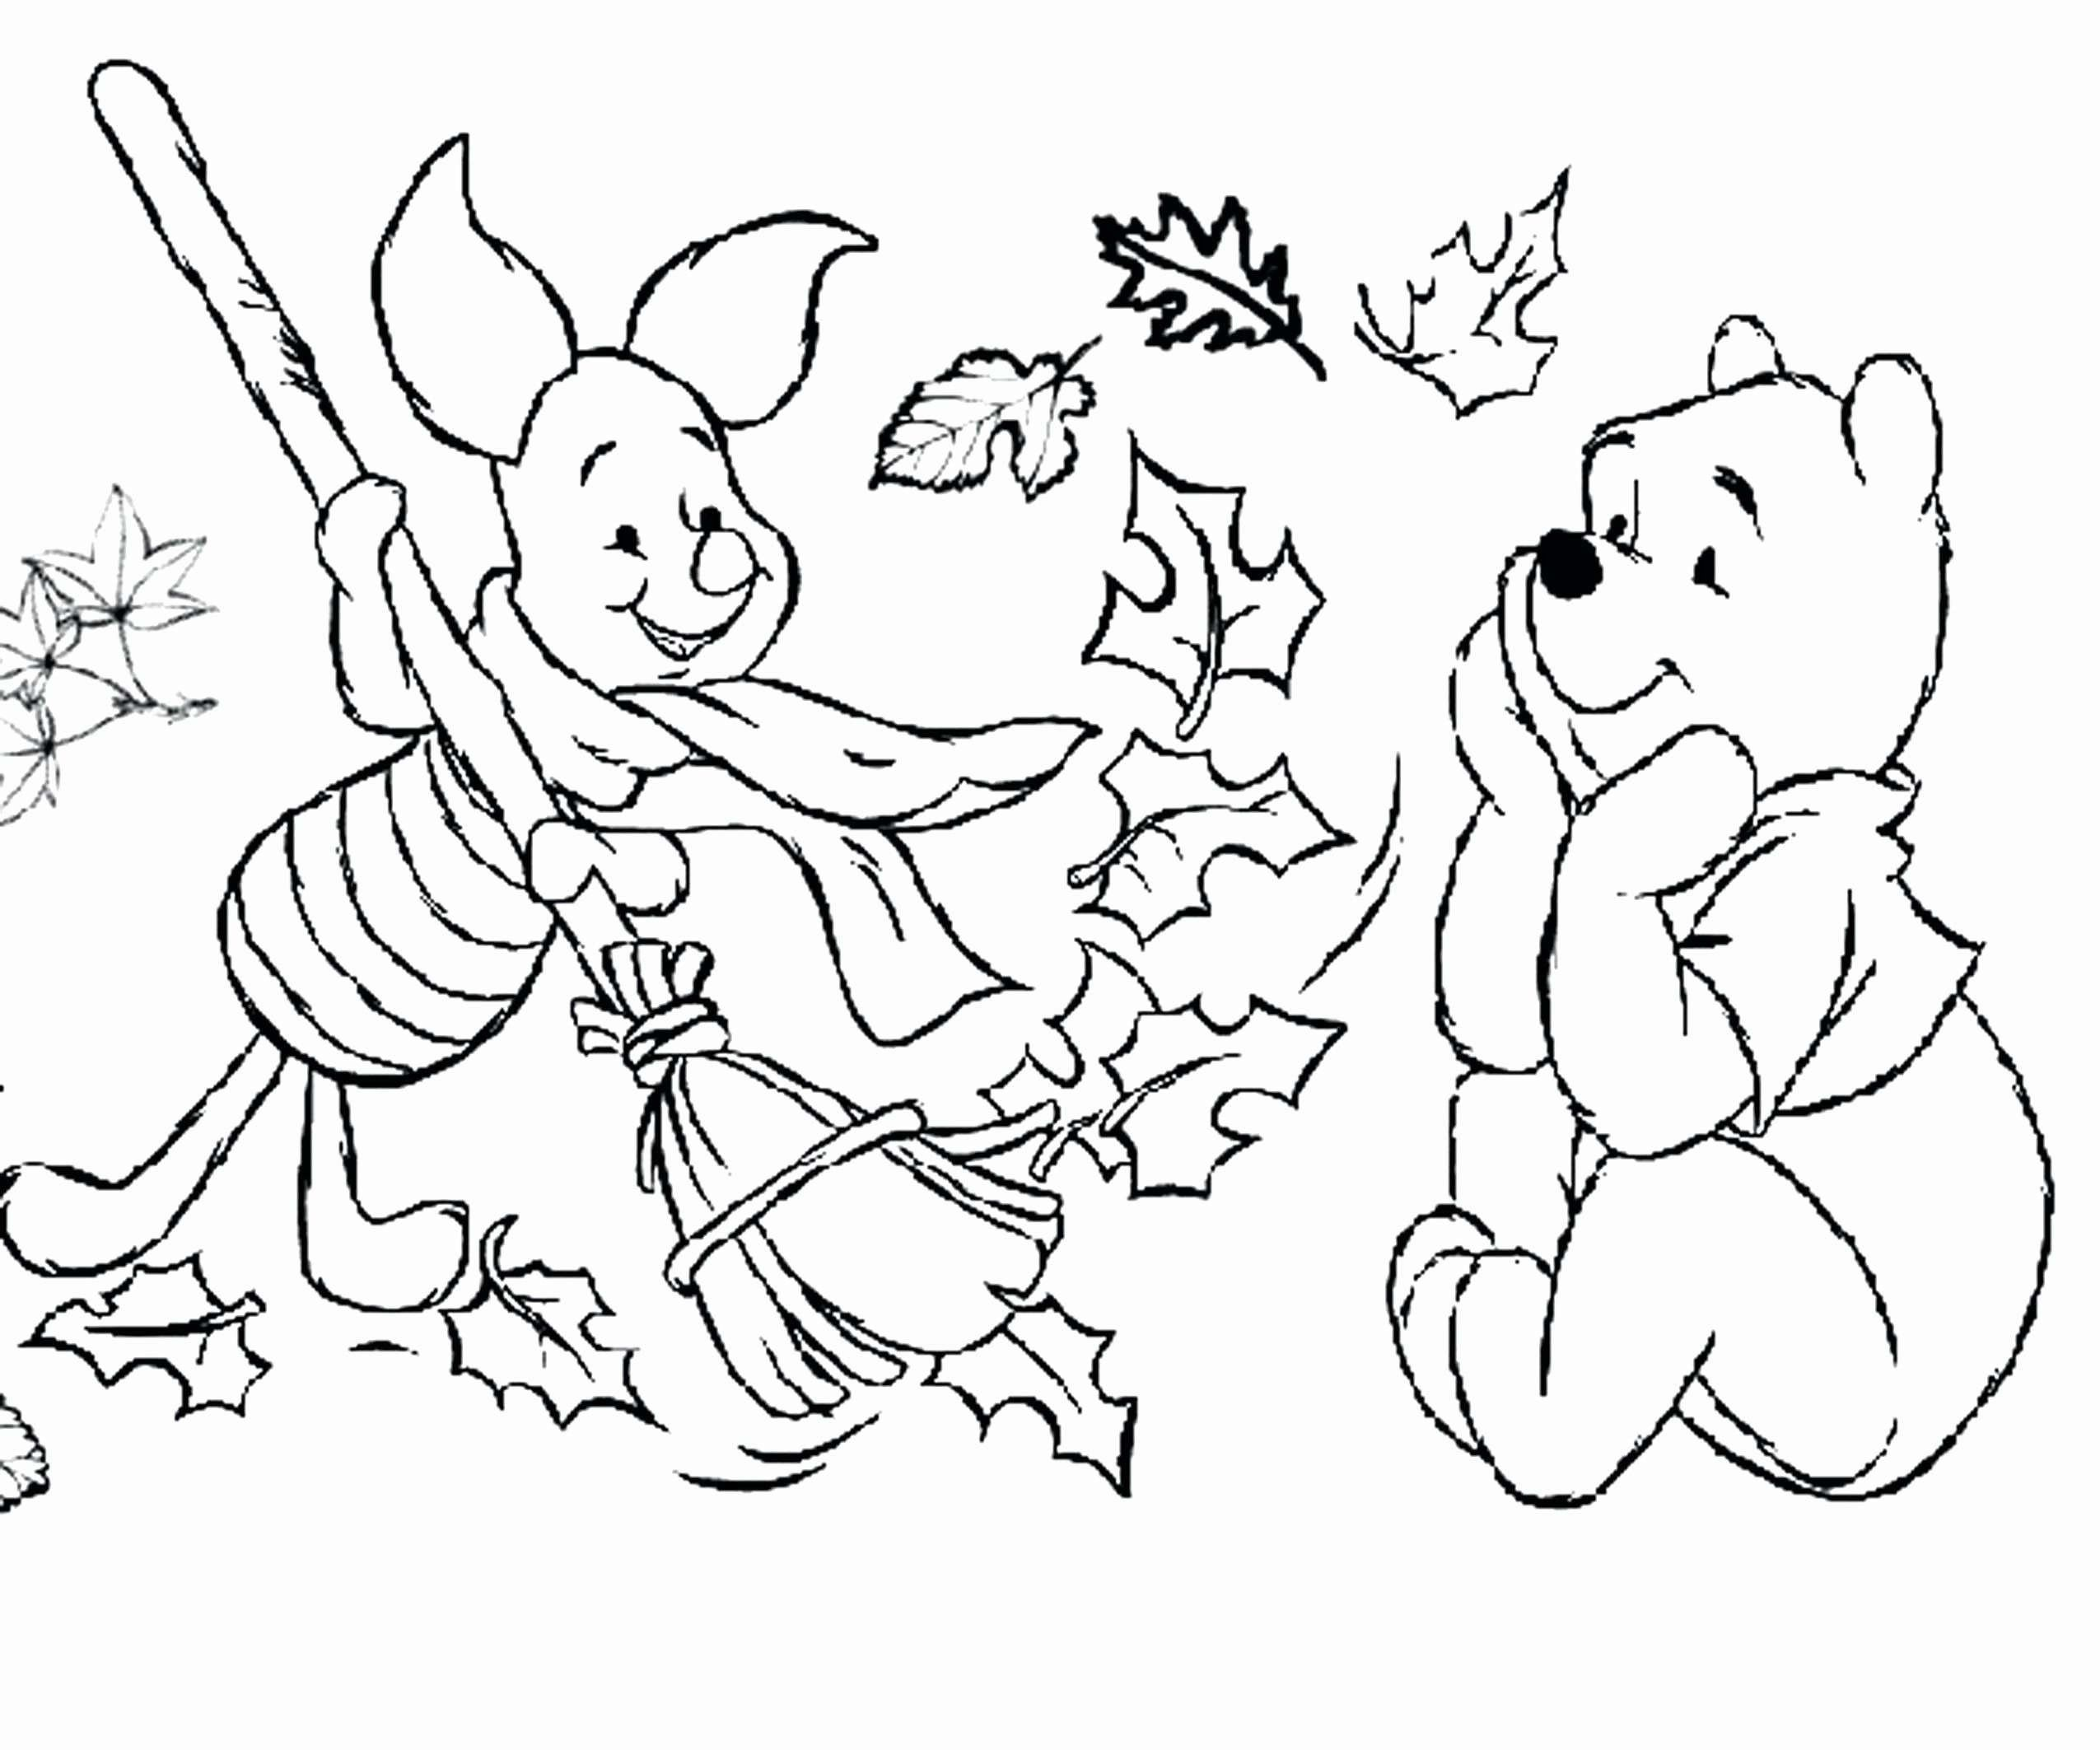 Oriental Trading Coloring Pages Beautiful 30 Oriental Trading Coloring Pages Download Coloring In 2020 Animal Coloring Pages Pokemon Coloring Pages Bear Coloring Pages